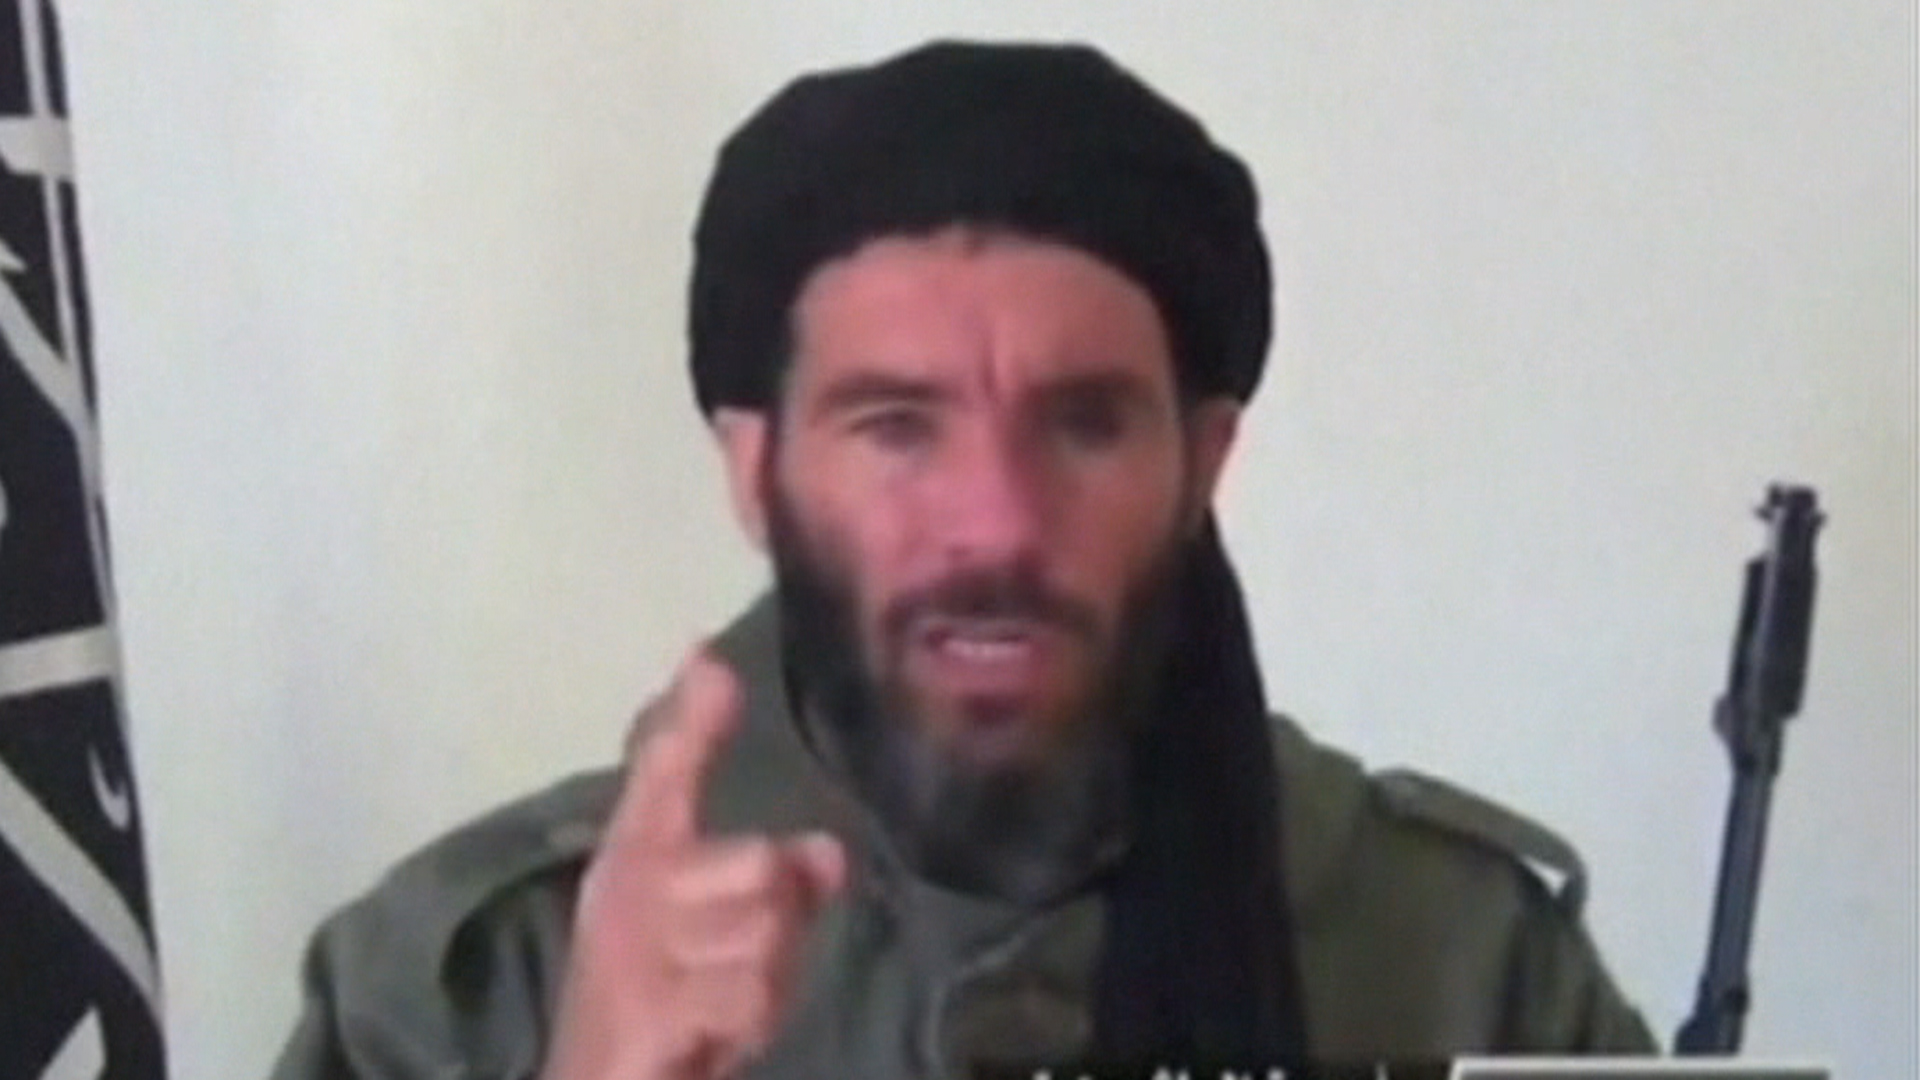 Al Qaeda Confirms Death of Nasir al-Wuhayshi, AQAP Leader and 2nd in Command